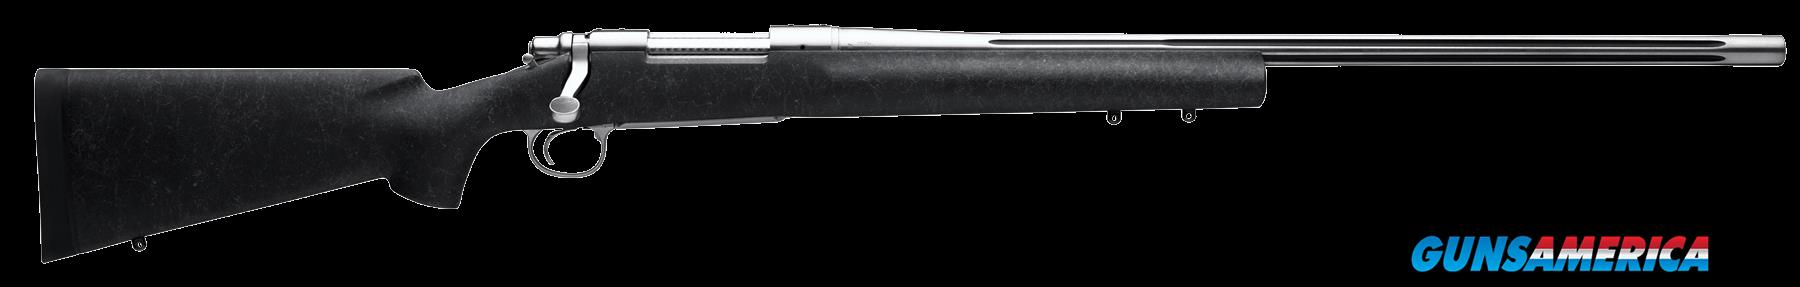 "Remington Firearms 27313 700 Sendero SF II Bolt 300 Winchester Magnum 26"" 3+1 Synthetic Black Stk  Guns > Rifles > R Misc Rifles"